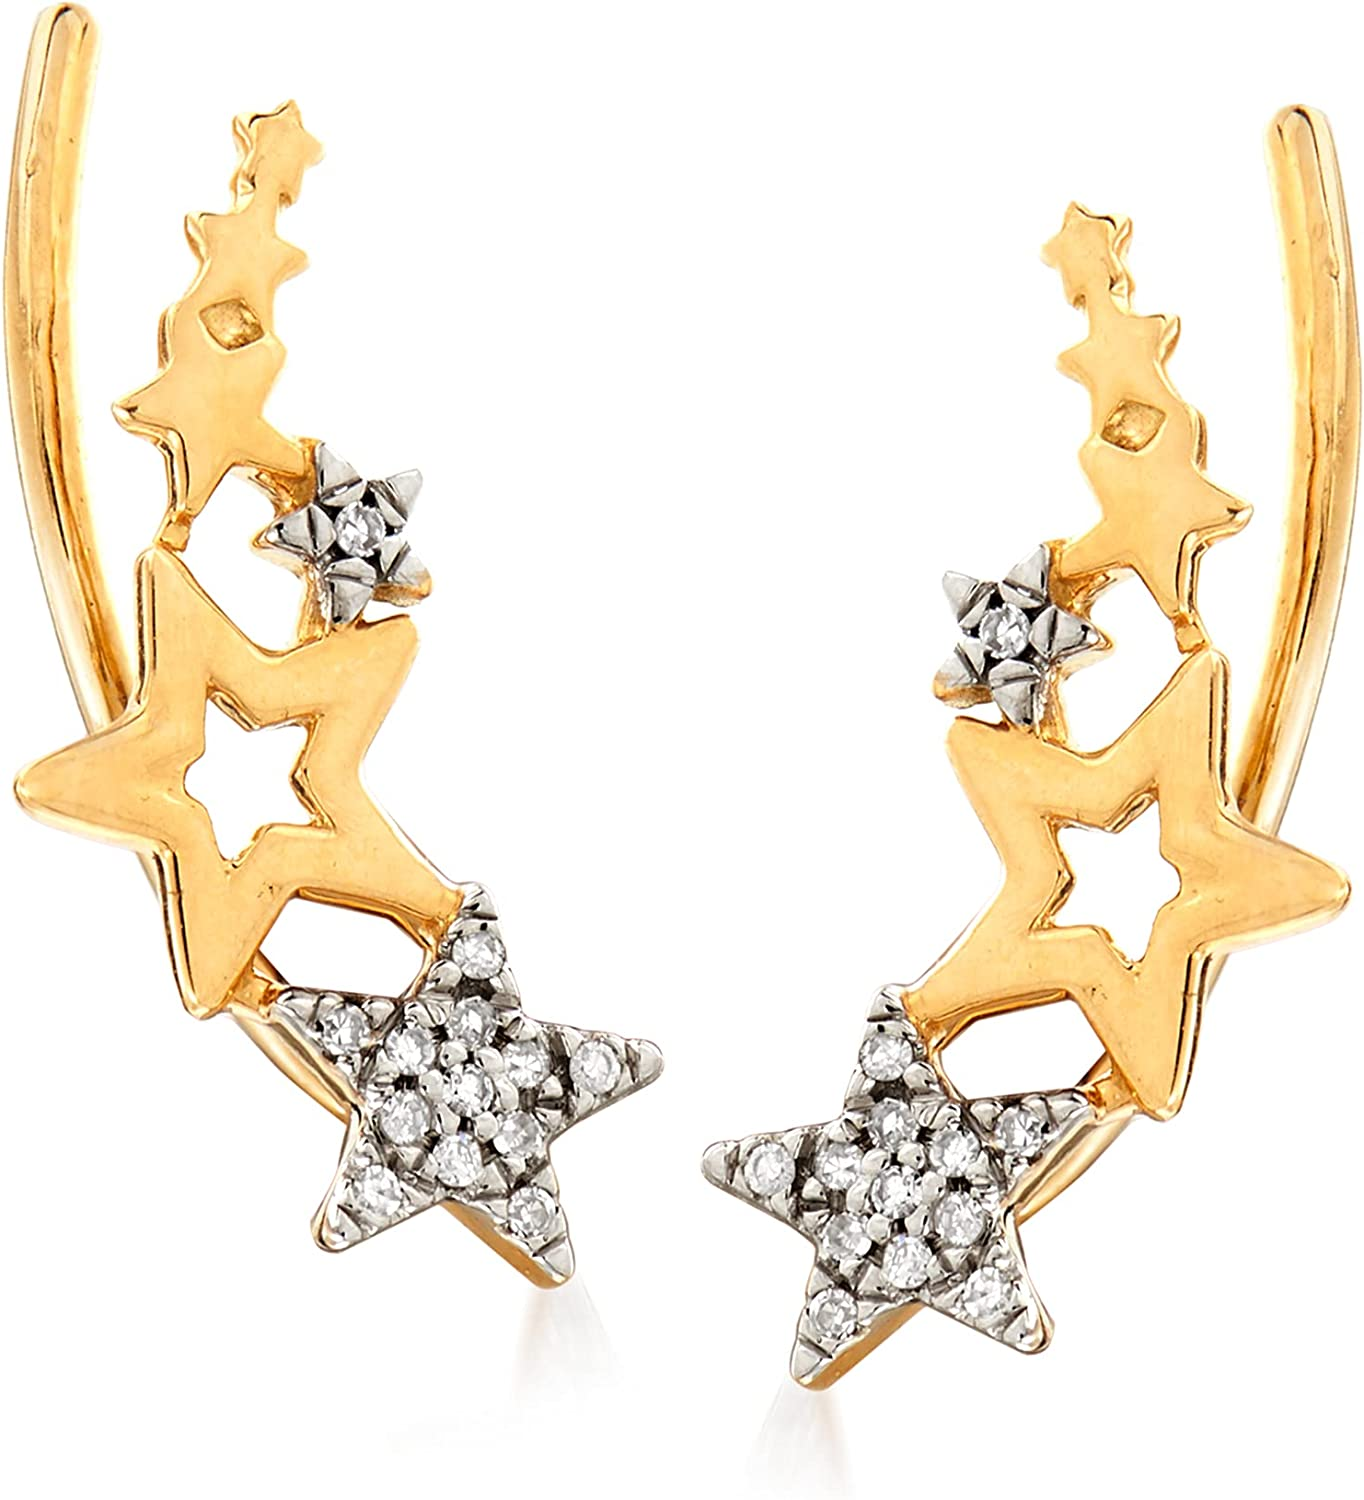 Ross-Simons 14kt Yellow Gold Multi-Star Ear Climbers With Diamond Accents